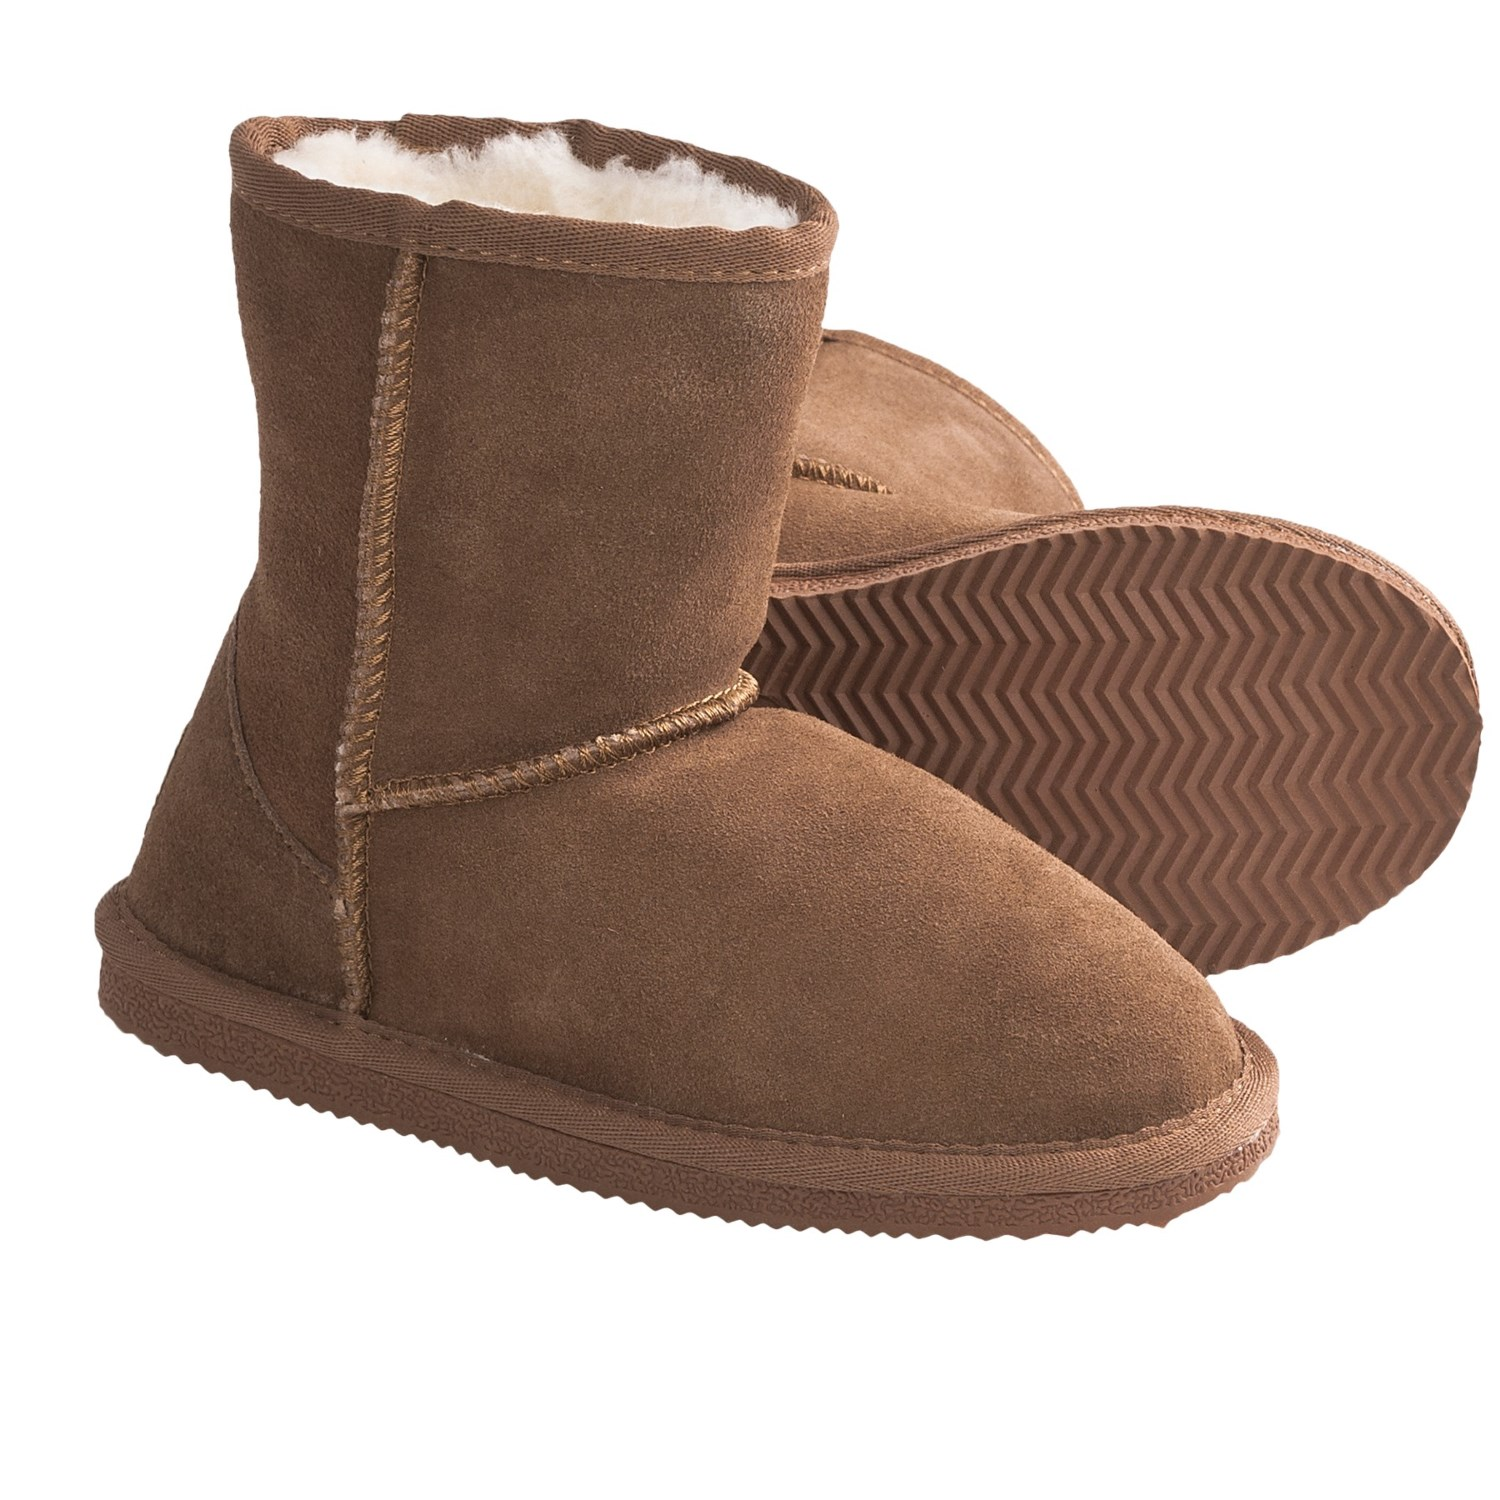 lamo suede sheepskin boots for youth boys and